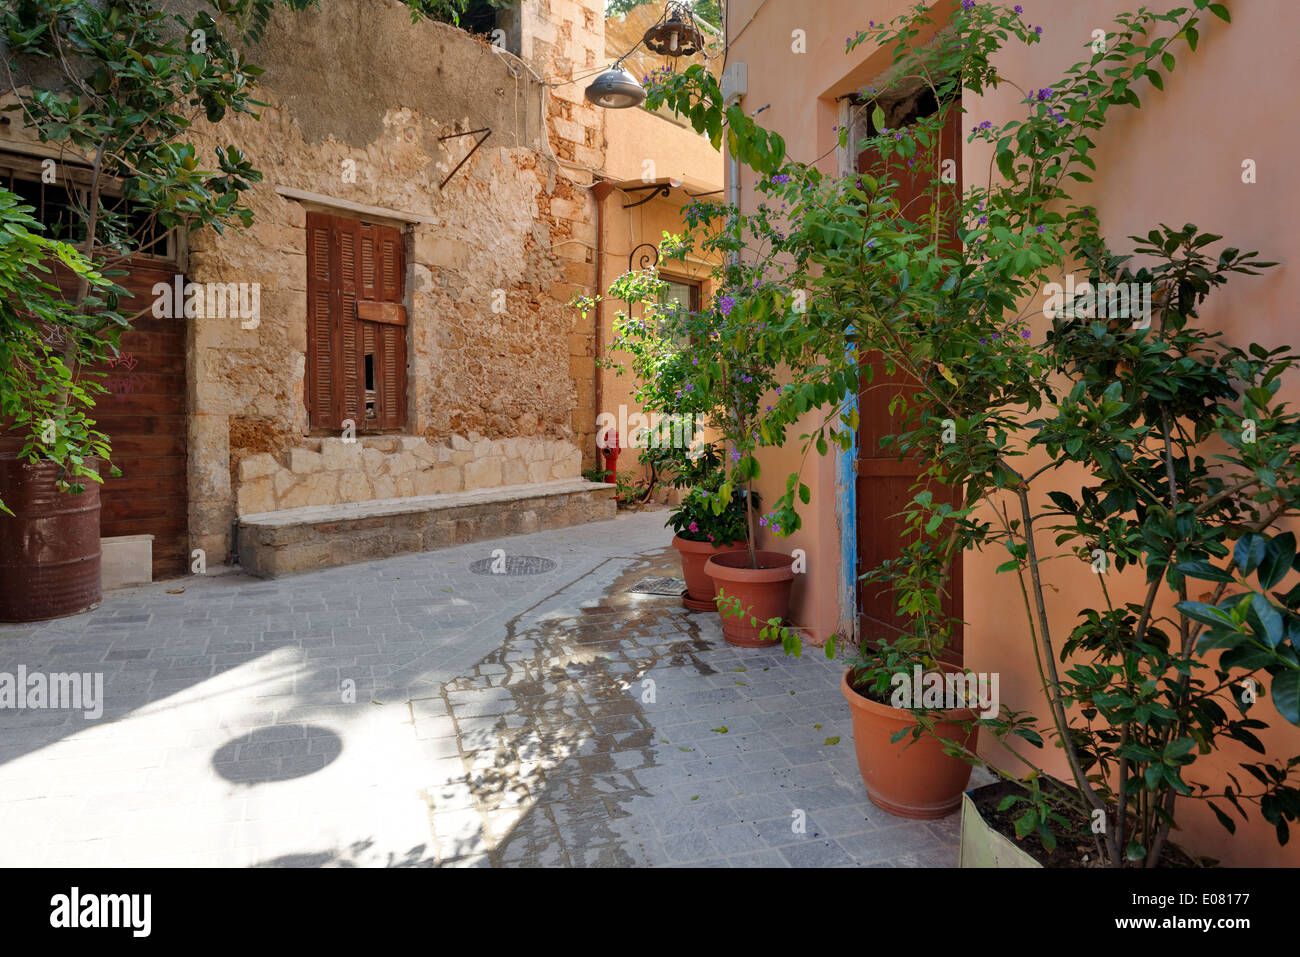 Narrow stone tiled alleyway lined with colourful facades pot plants back street old town Chania Crete Greece - Stock Image